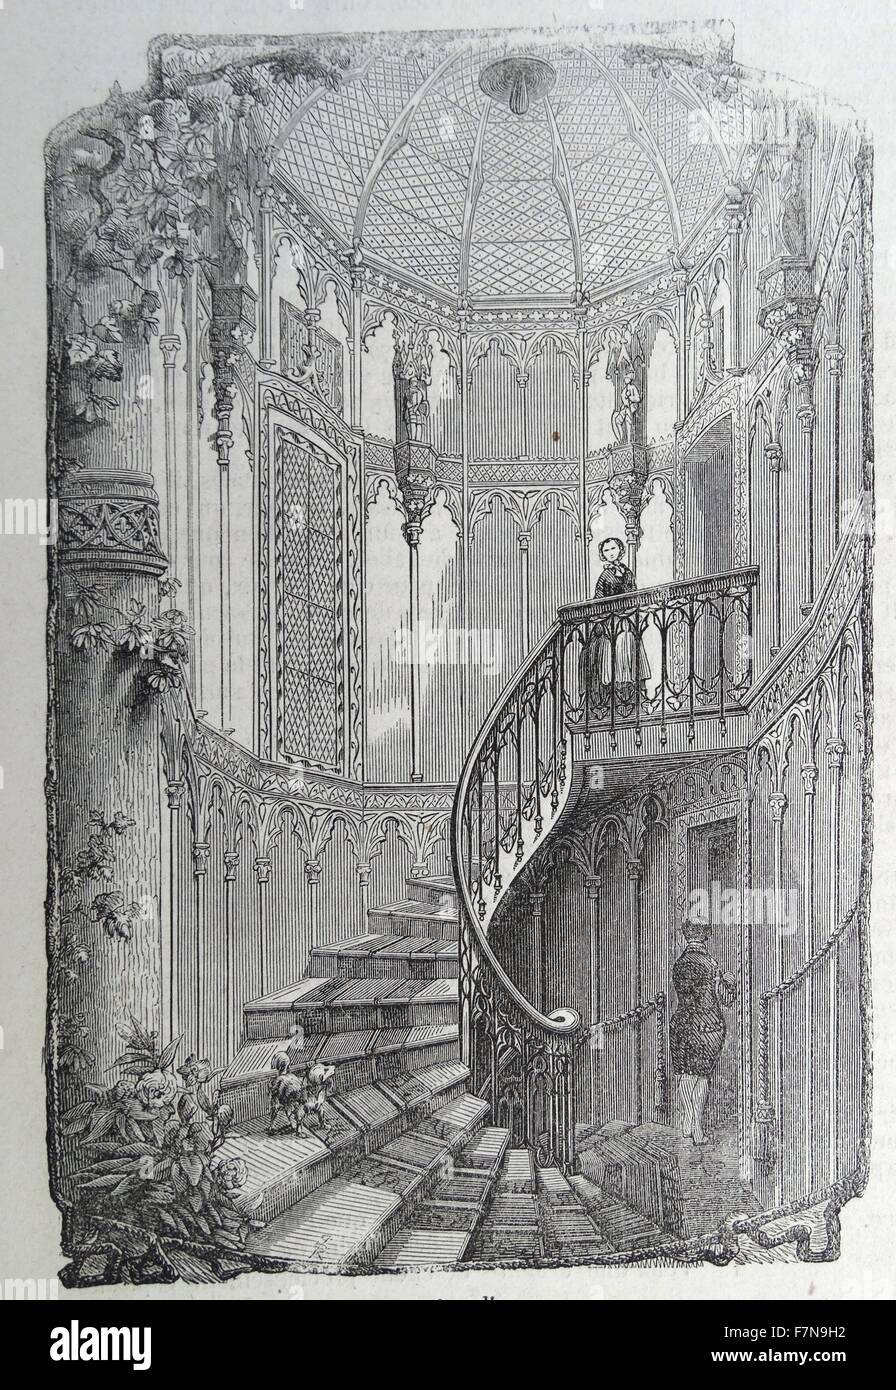 Illustration titled 'L'escalier' which translates to 'The Staircase'. The illustration is of - Stock Image